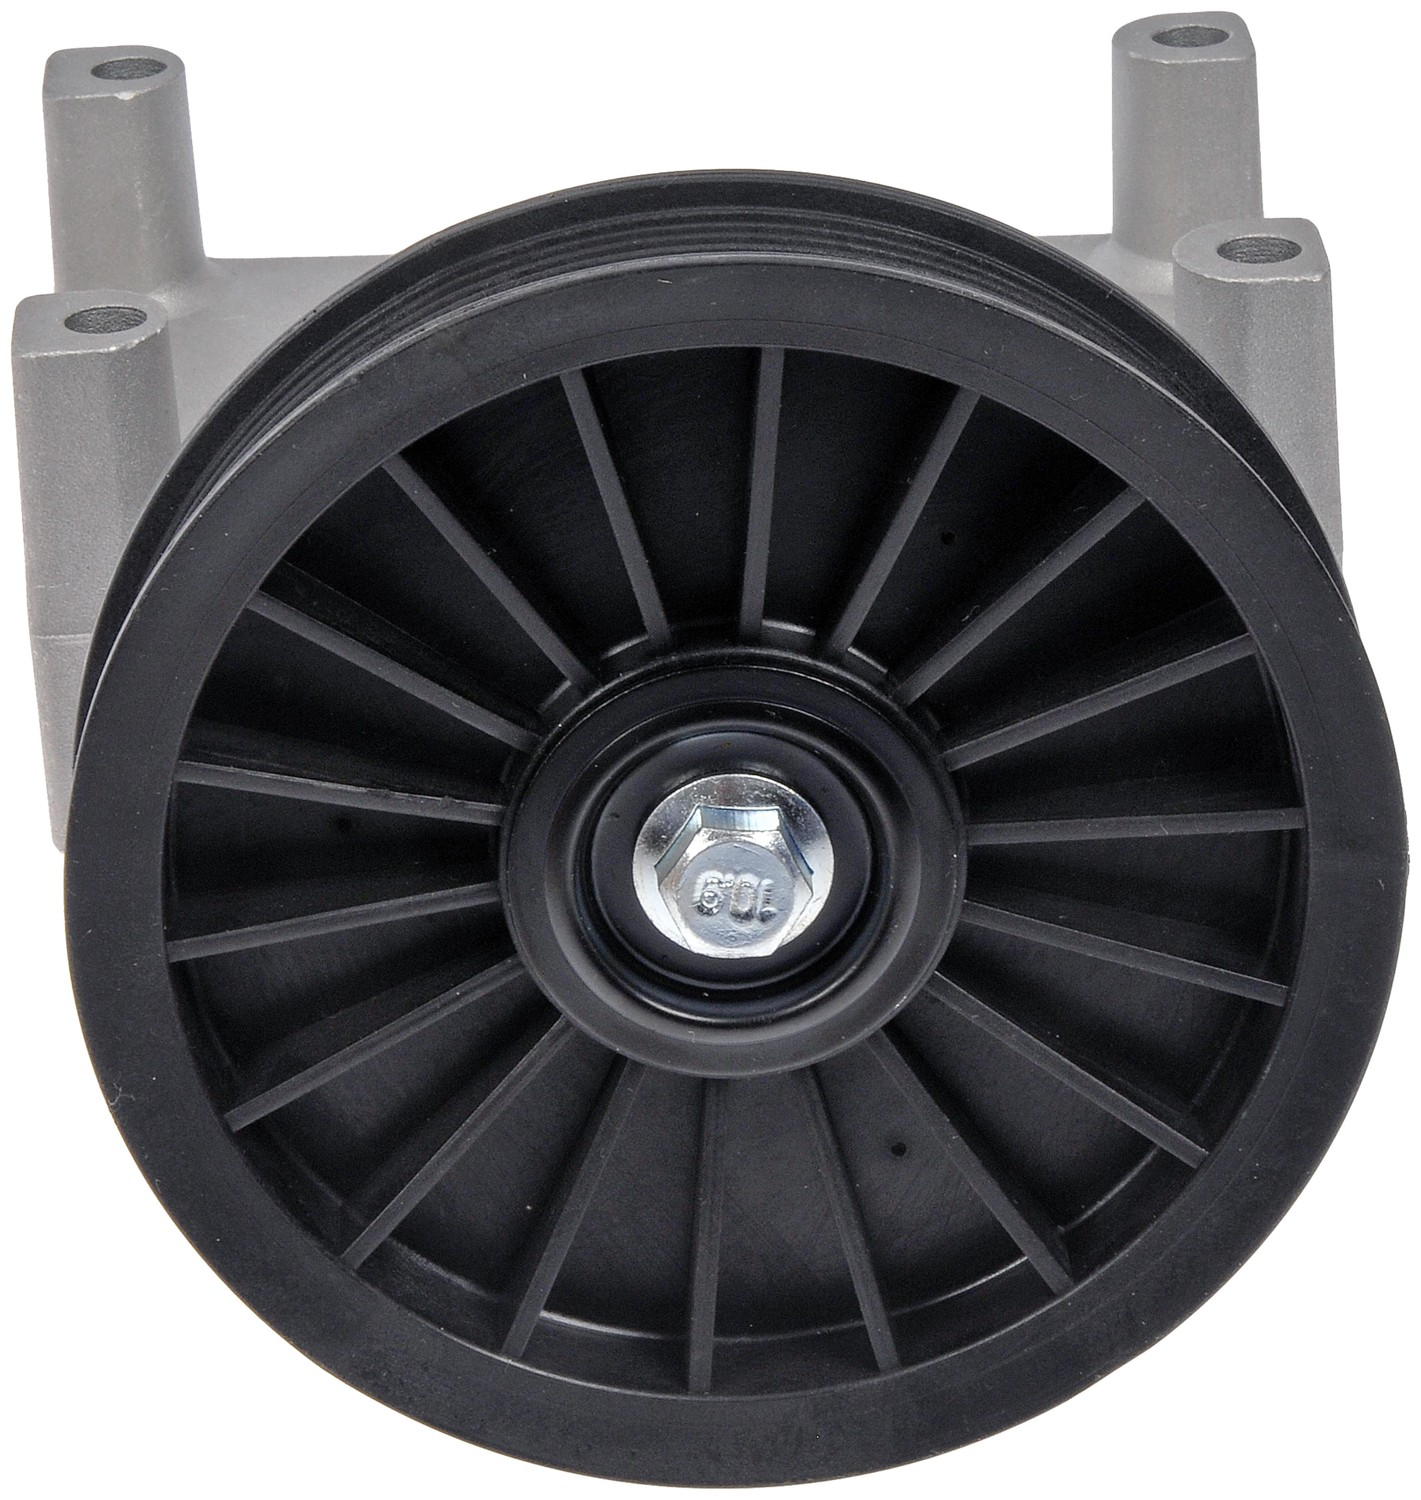 2005 Lexus Rx330 A C Compressor Bypass Pulley Black Mm 34852